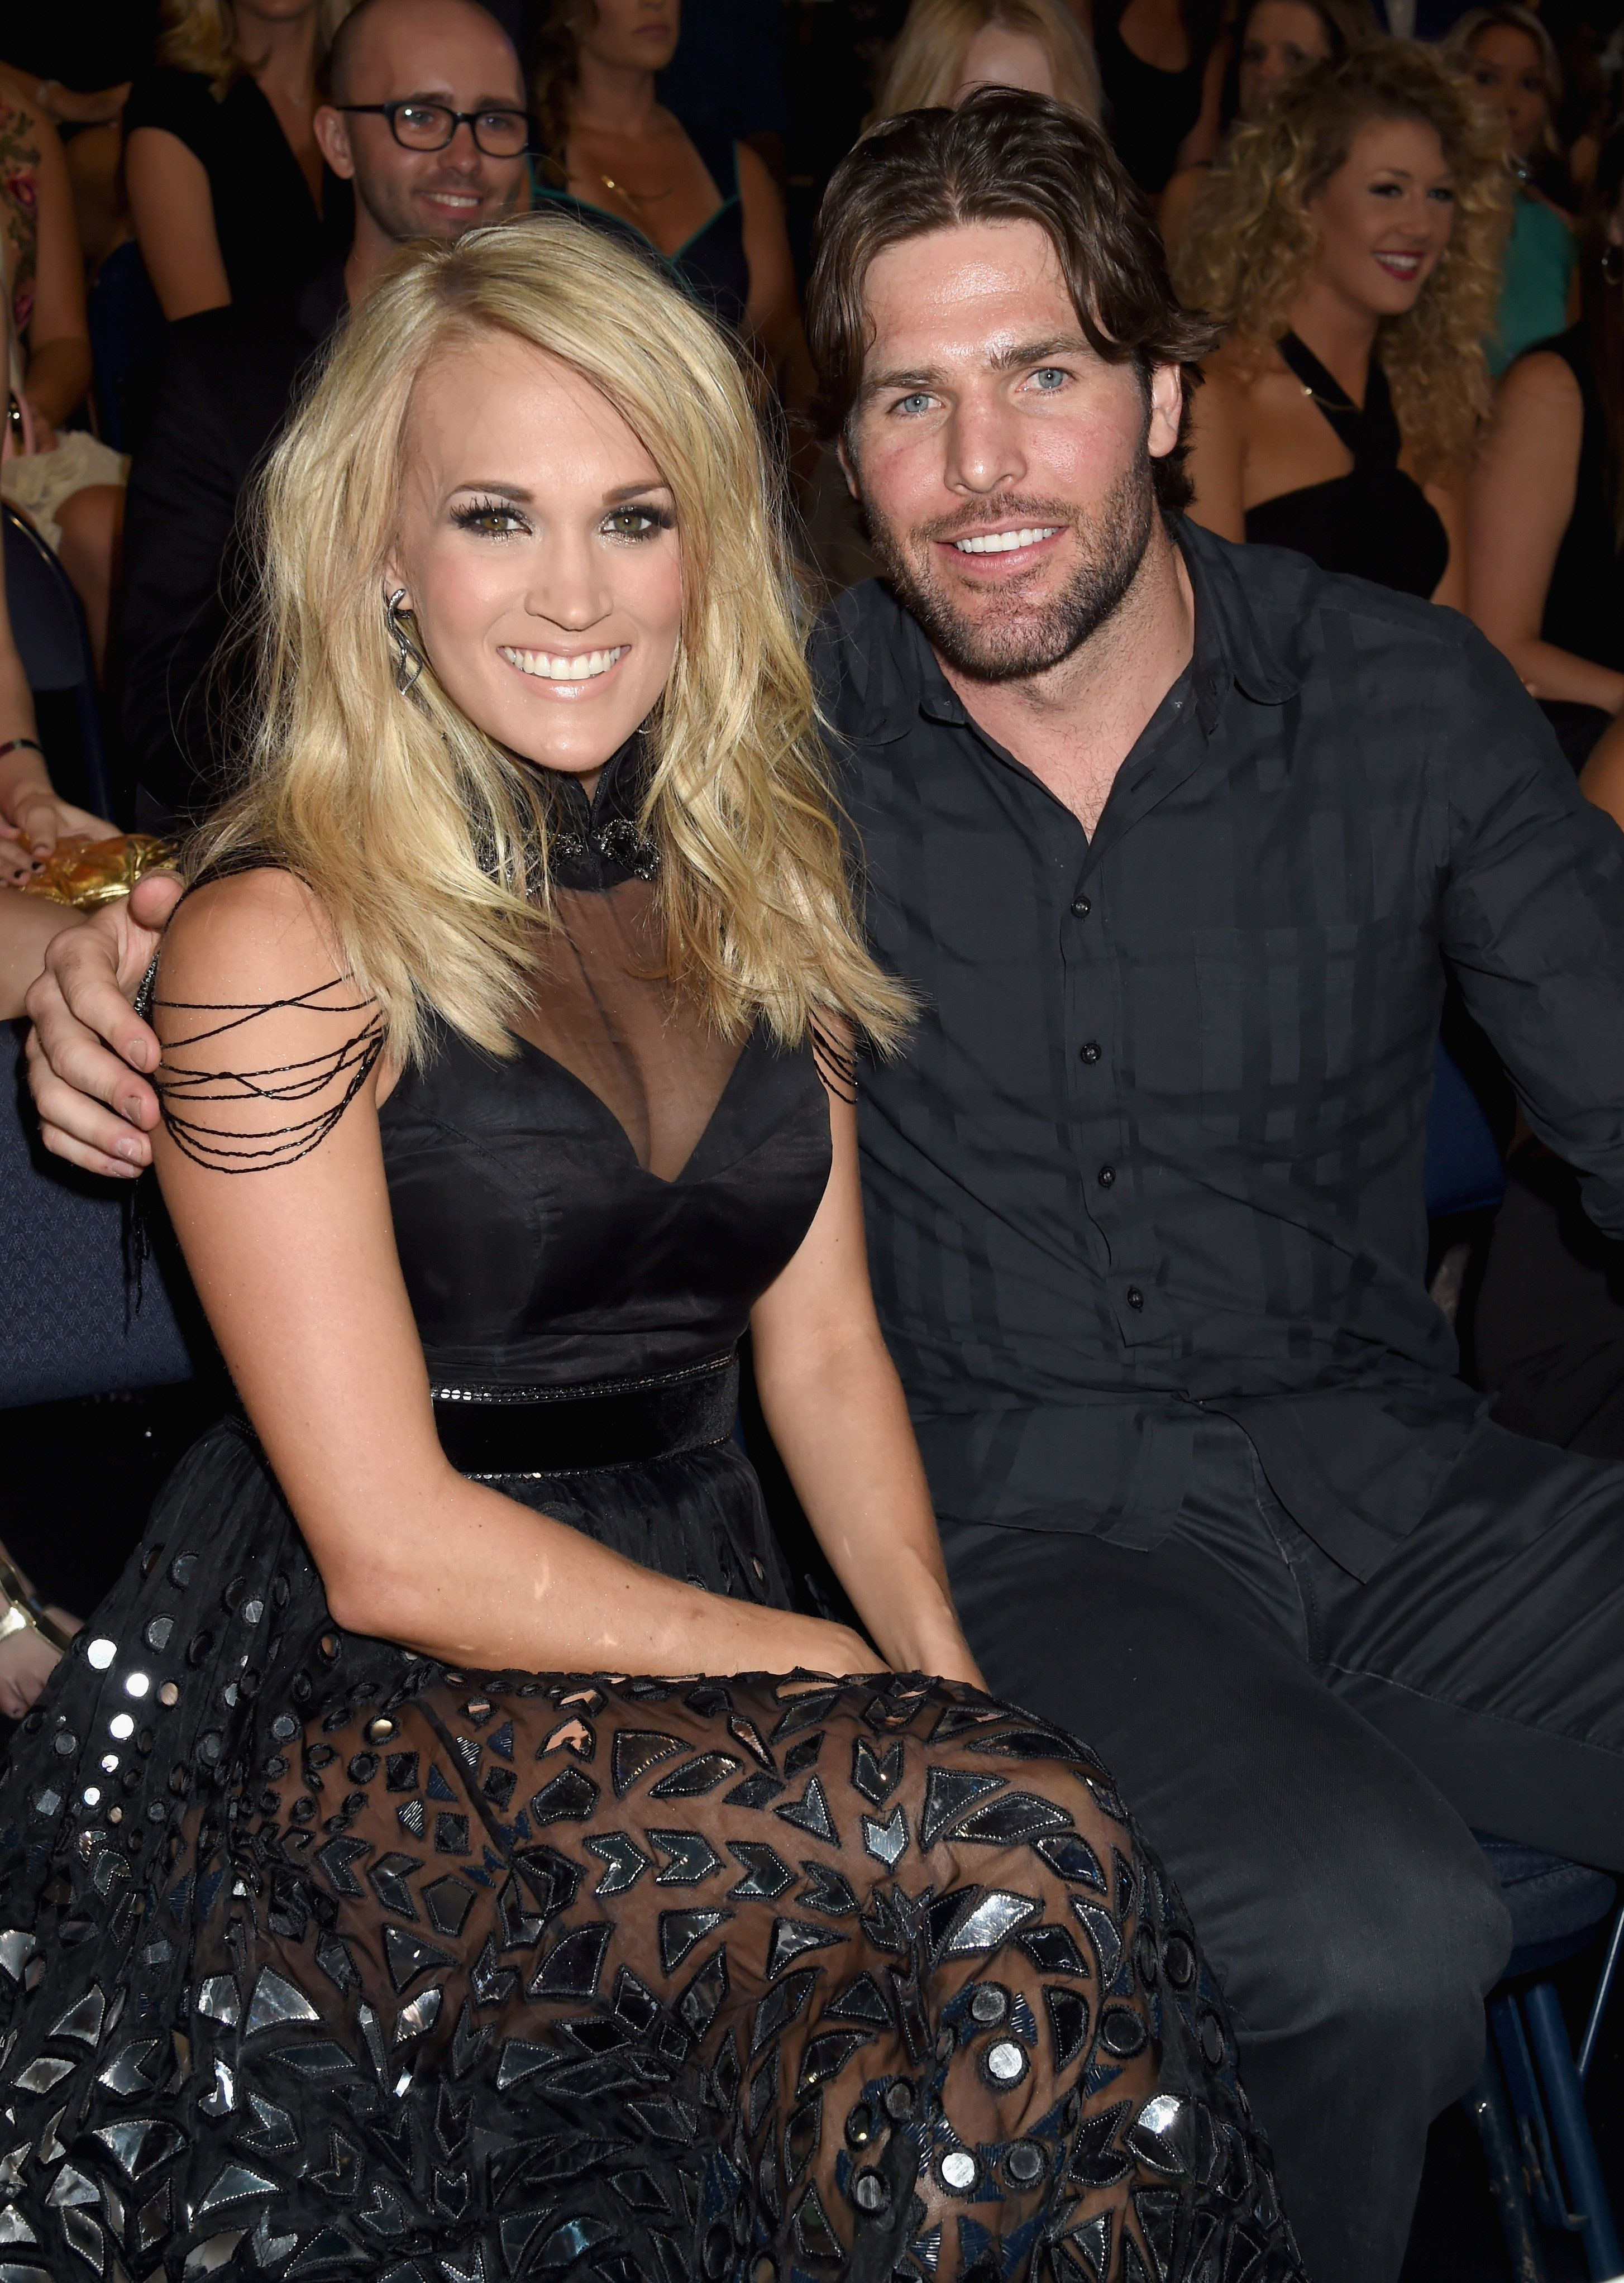 NASHVILLE, TN - JUNE 10:  Singer Carrie Underwood and NHL player Mike Fisher attends the 2015 CMT Music awards at the Bridgestone Arena on June 10, 2015 in Nashville, Tennessee.  (Photo by Jeff Kravitz/FilmMagic)